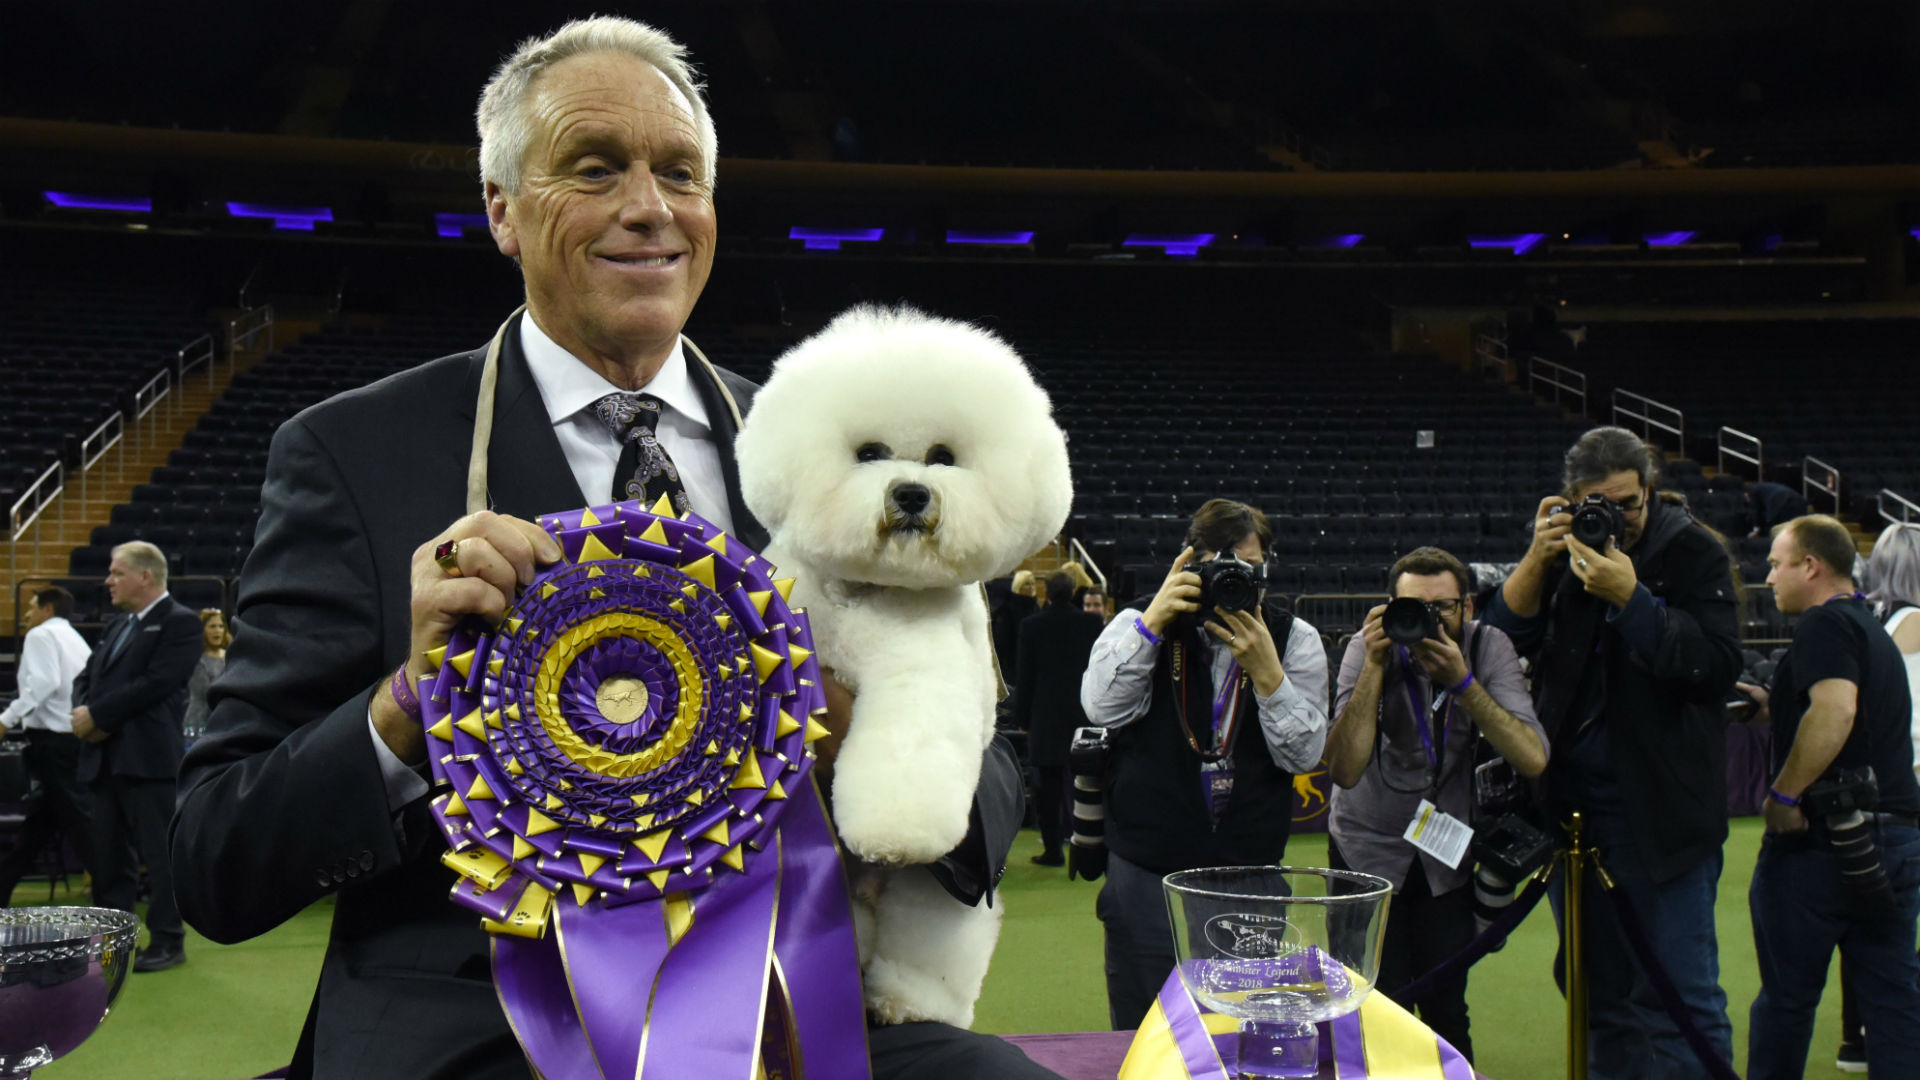 Westminster Dog Show 2020 Dates.Westminster Dog Show 2019 Dates Tv Schedule Live Stream